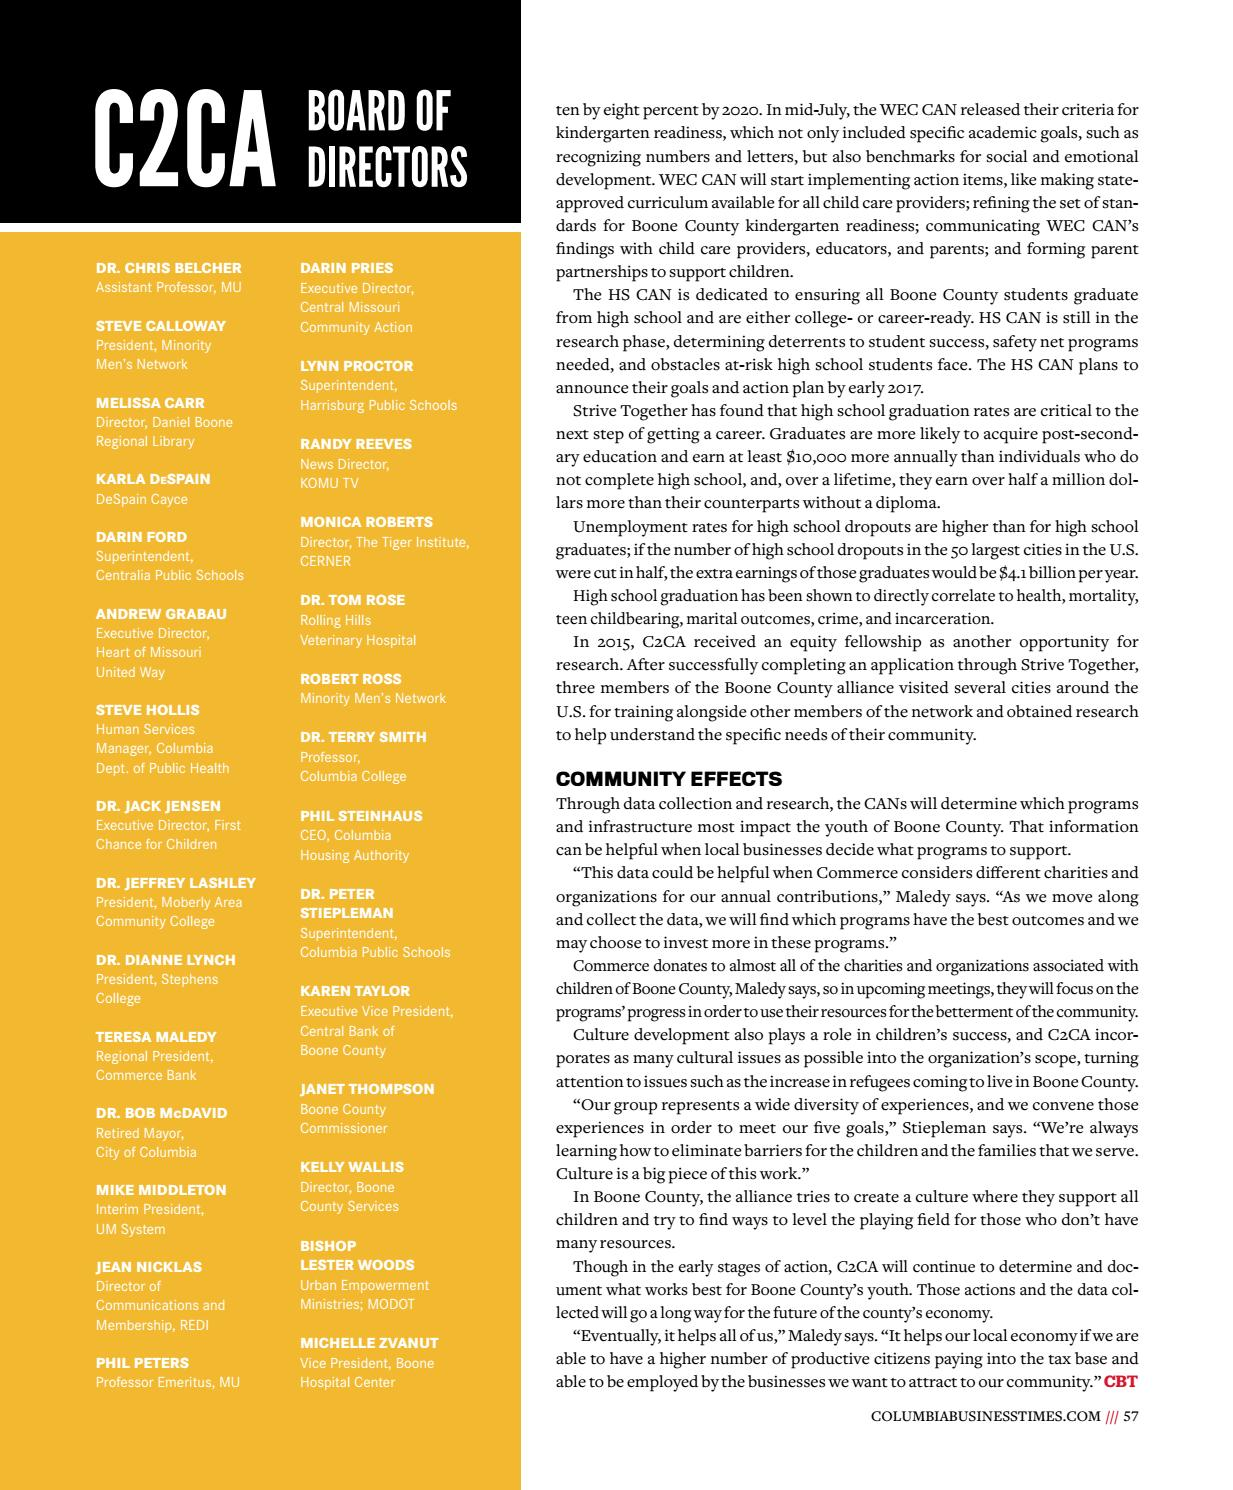 Columbia Business Times - August 2016 by Business Times